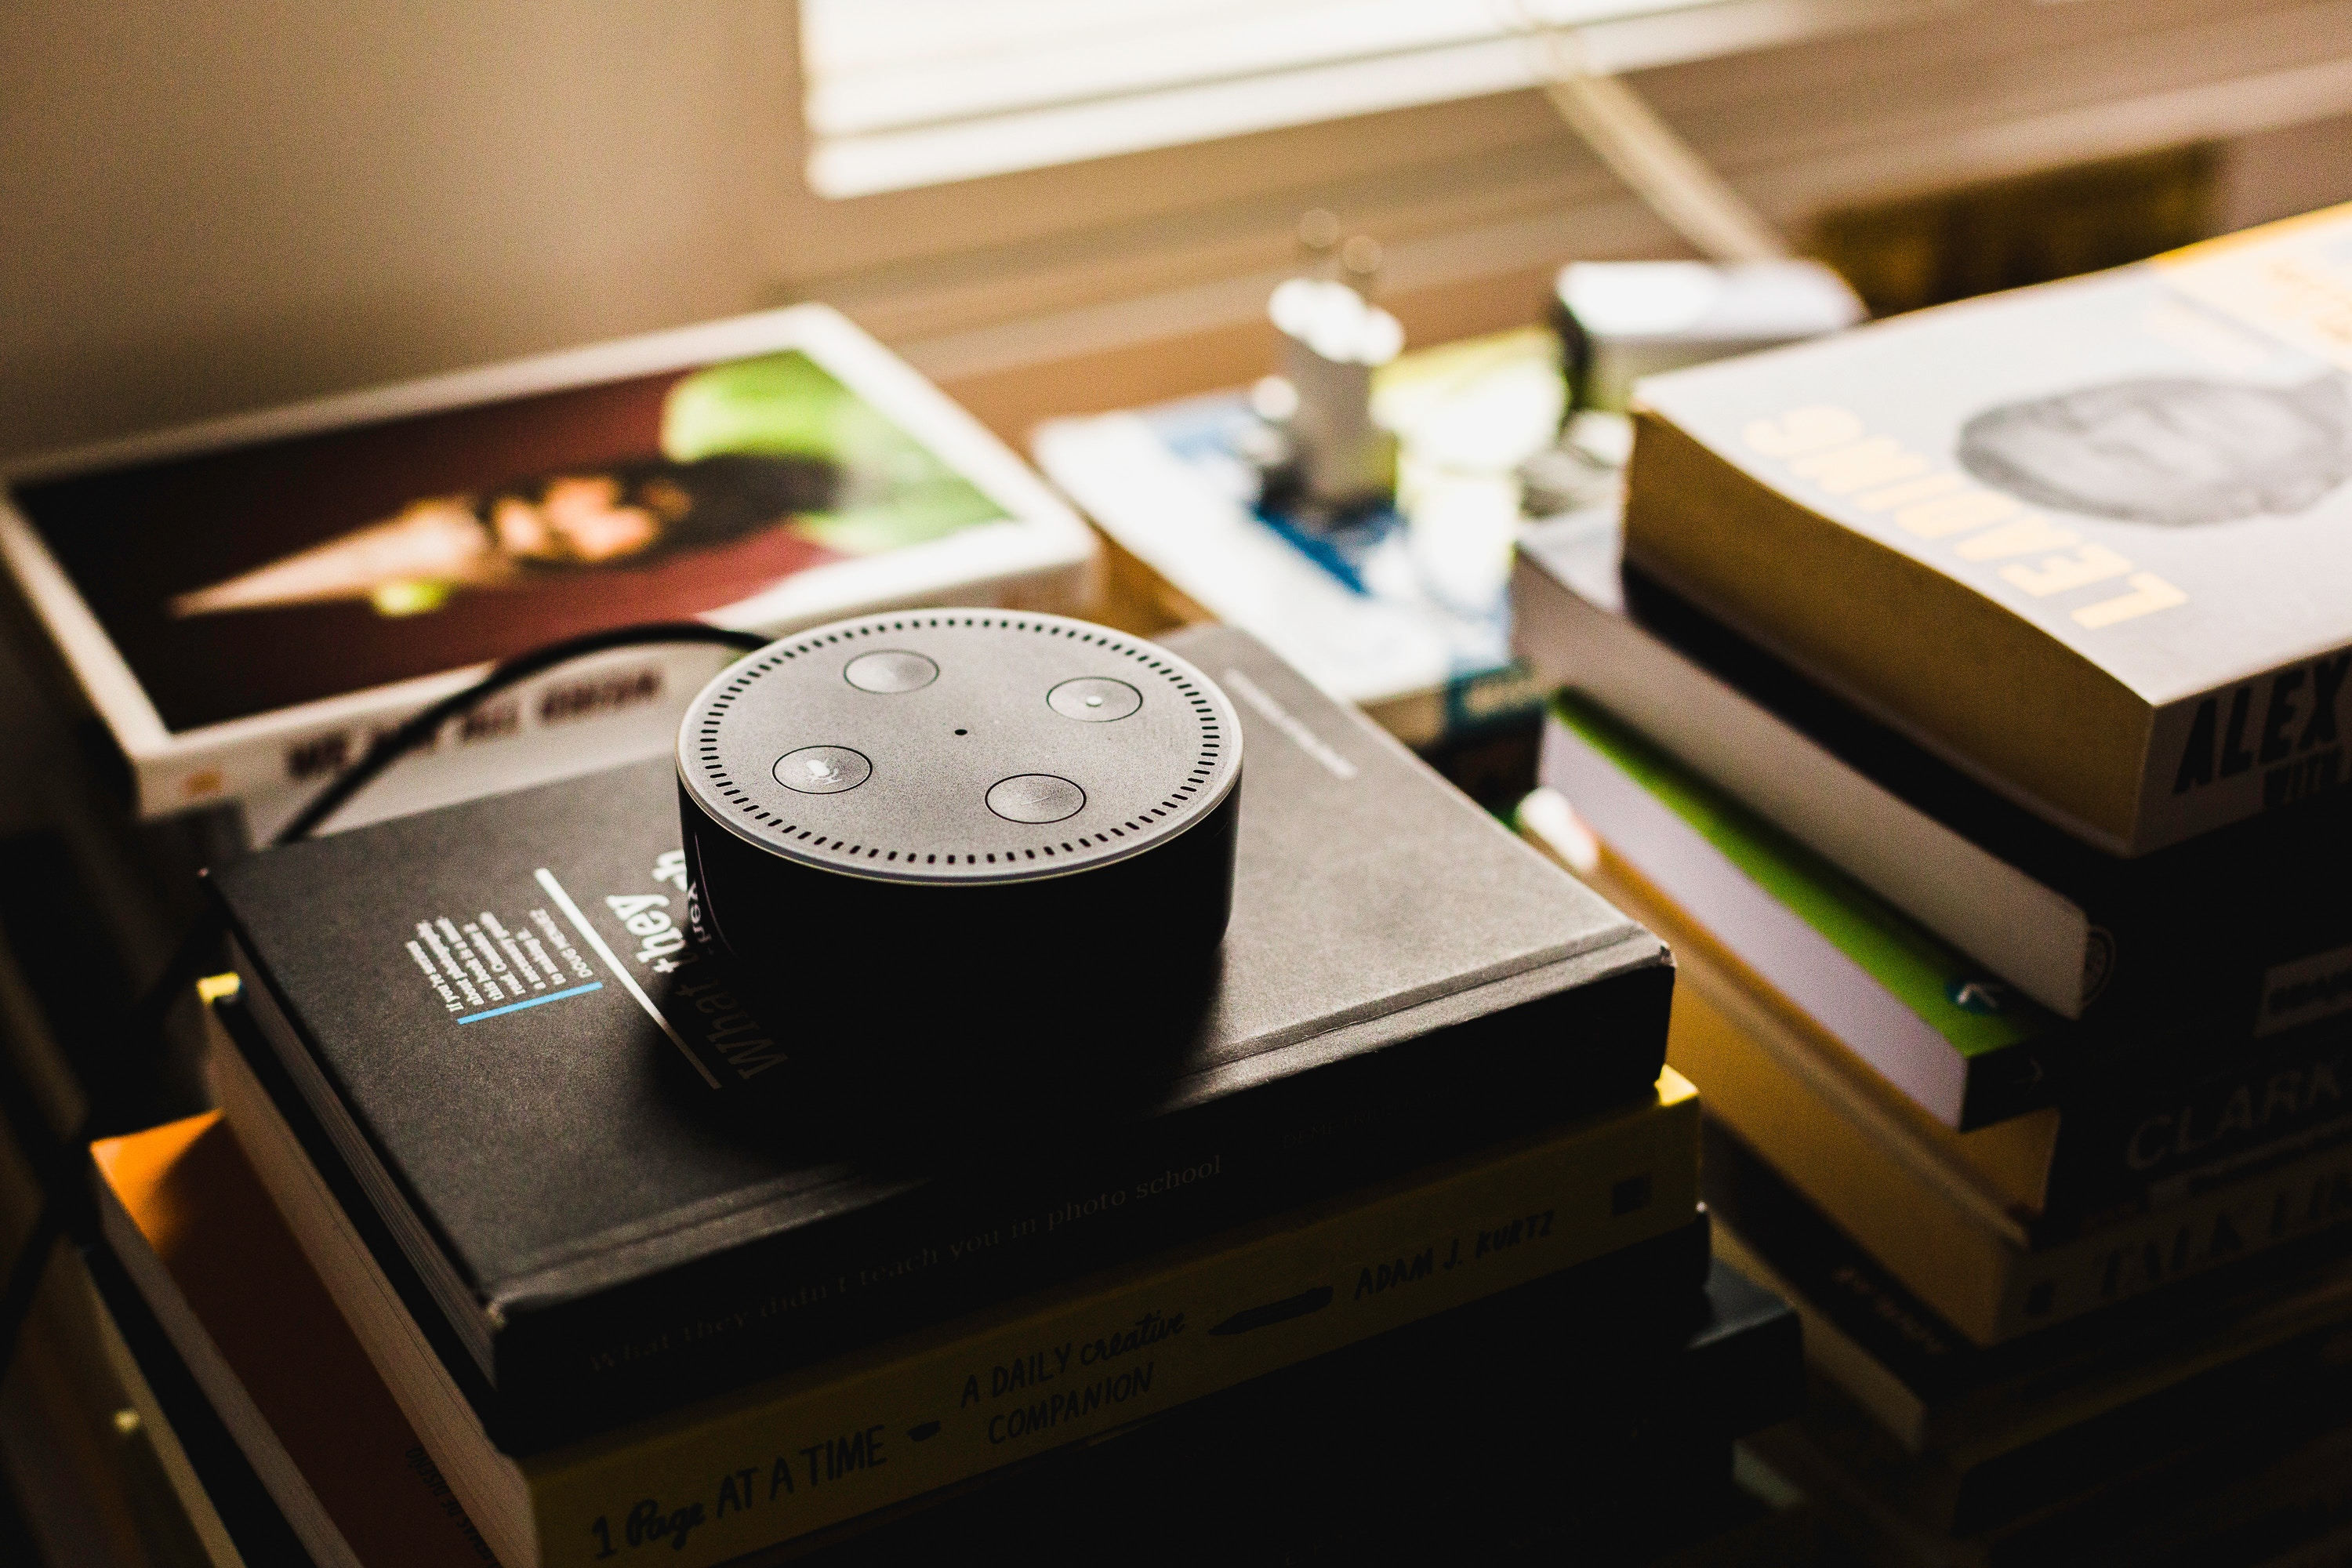 copywriting and voice-friendly search devices such as alexa and siri